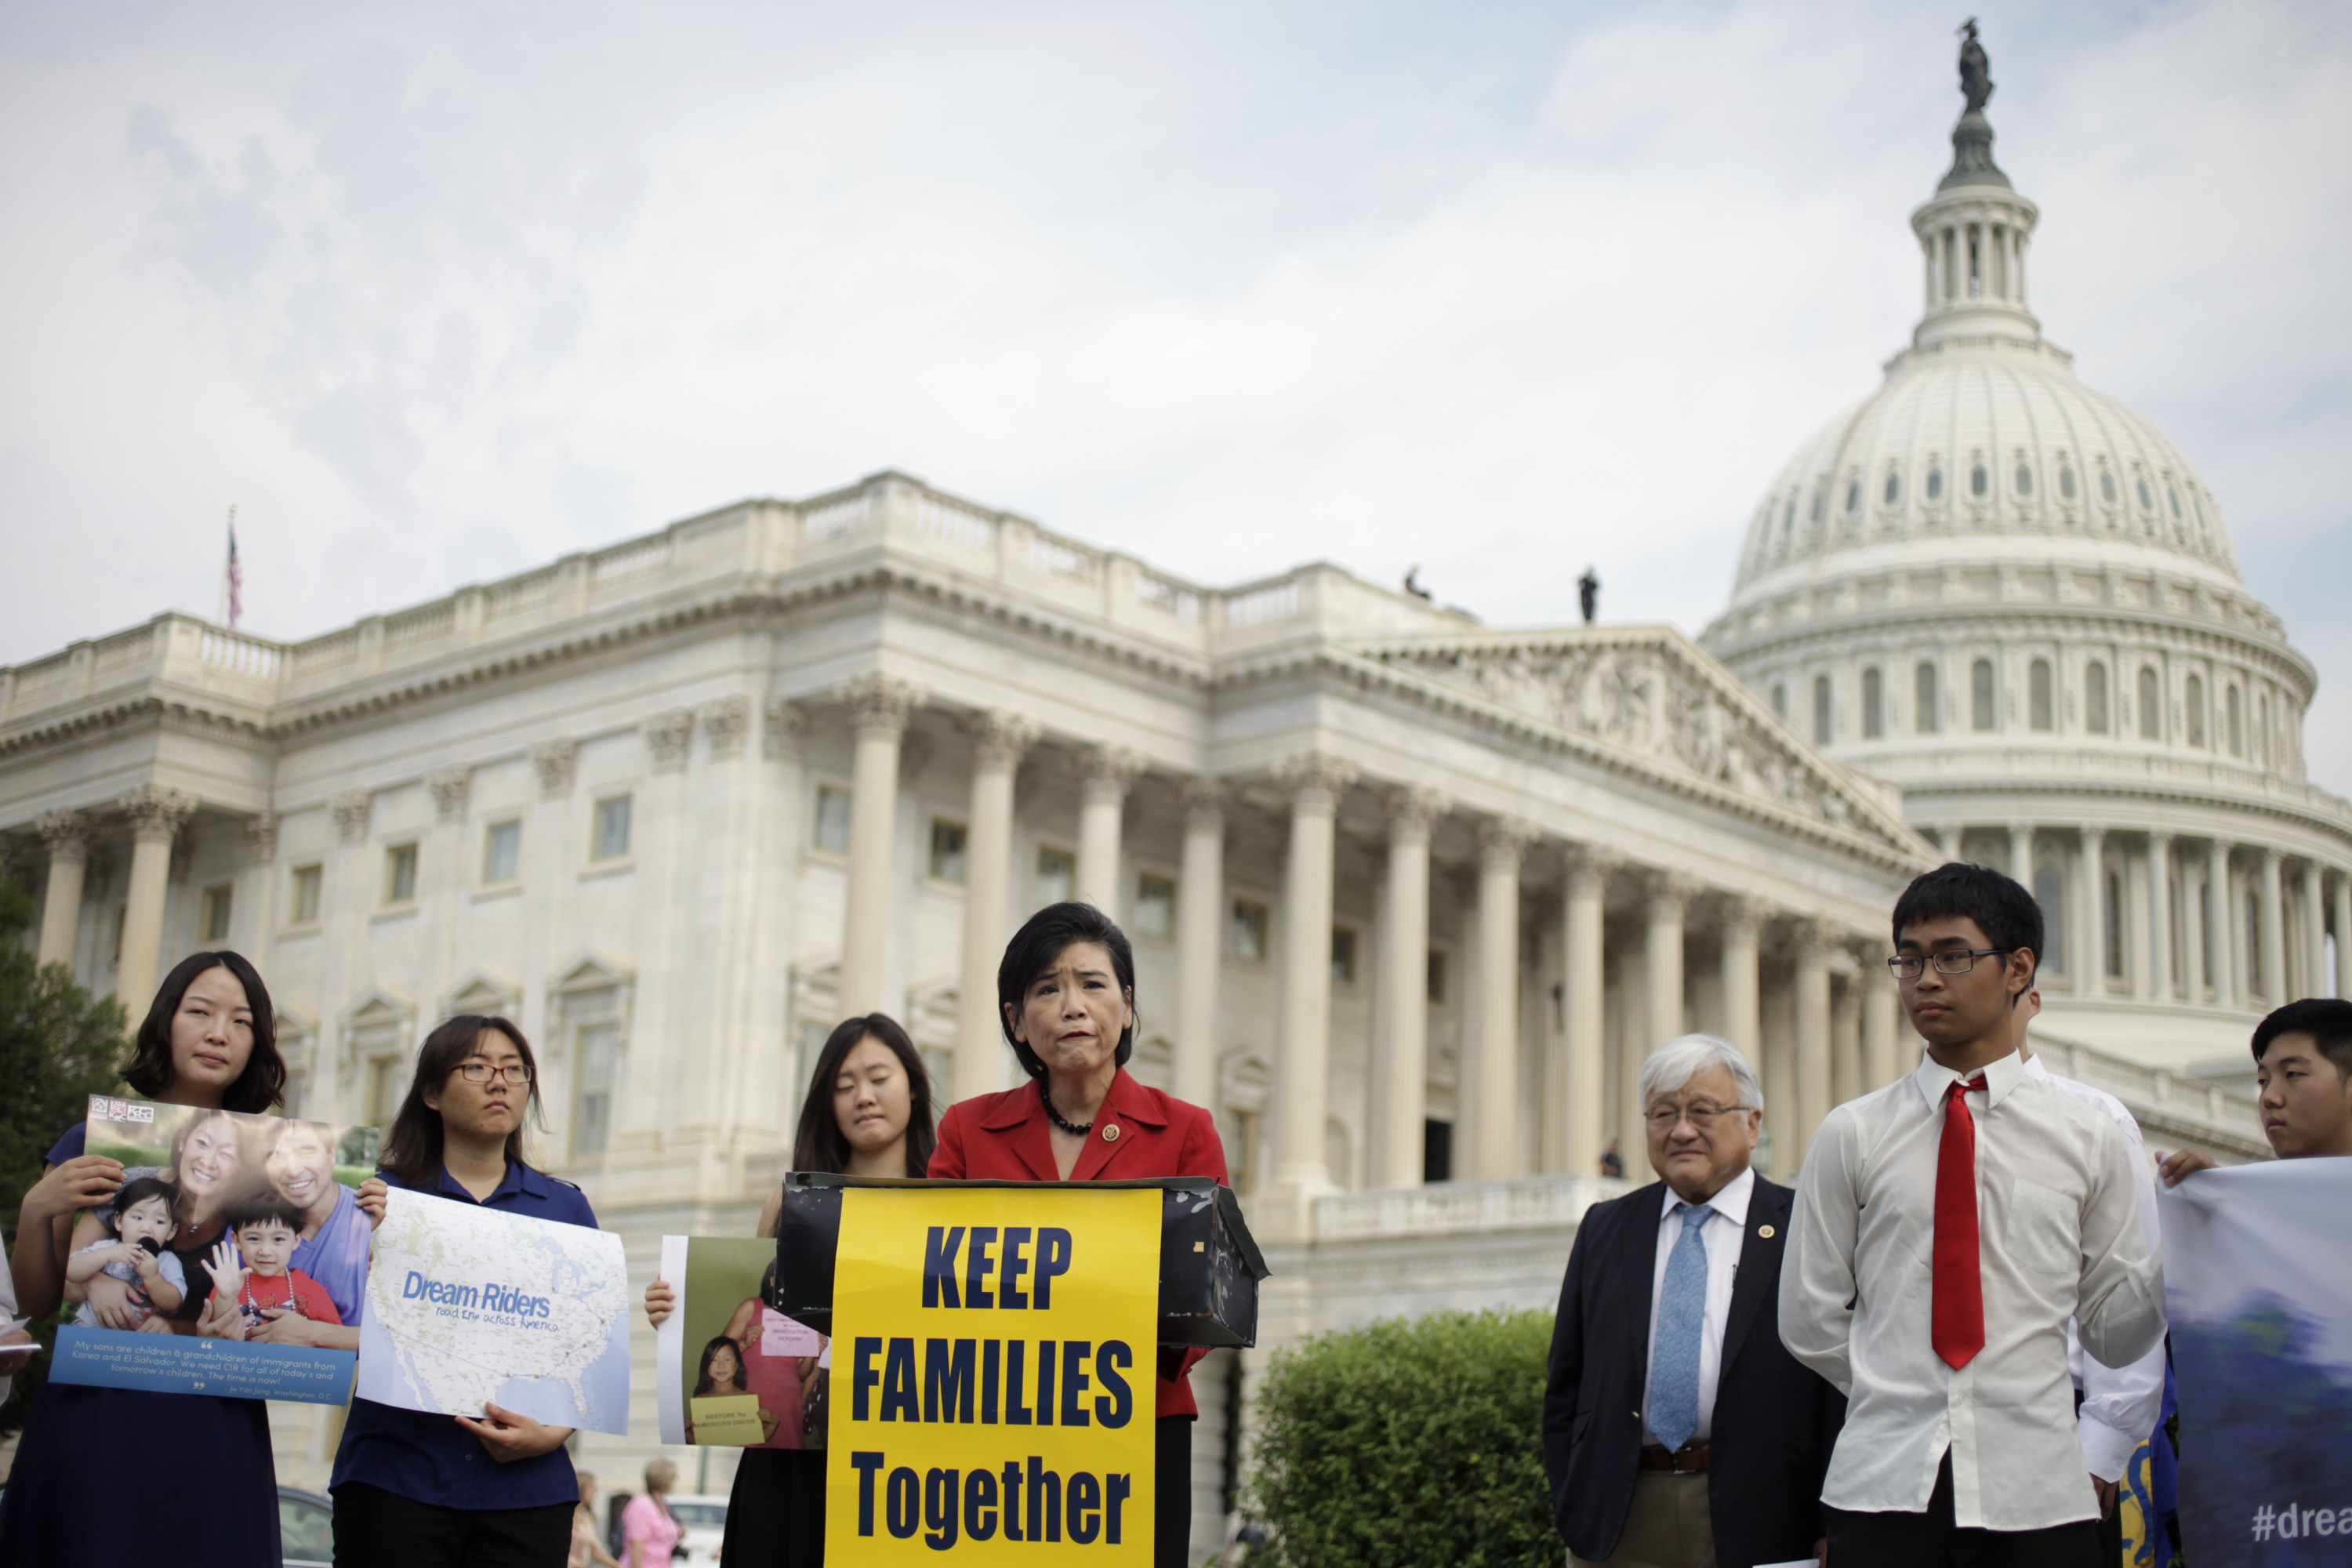 Judy Chu, D-Calif., speaks outside the Capitol Wednesday in support of immigration reform and the DREAM riders. The riders, a group of undocumented students will be visiting nine cities over 10 days to raise awareness about immigration reform. (Rob Denton/SHFWire)